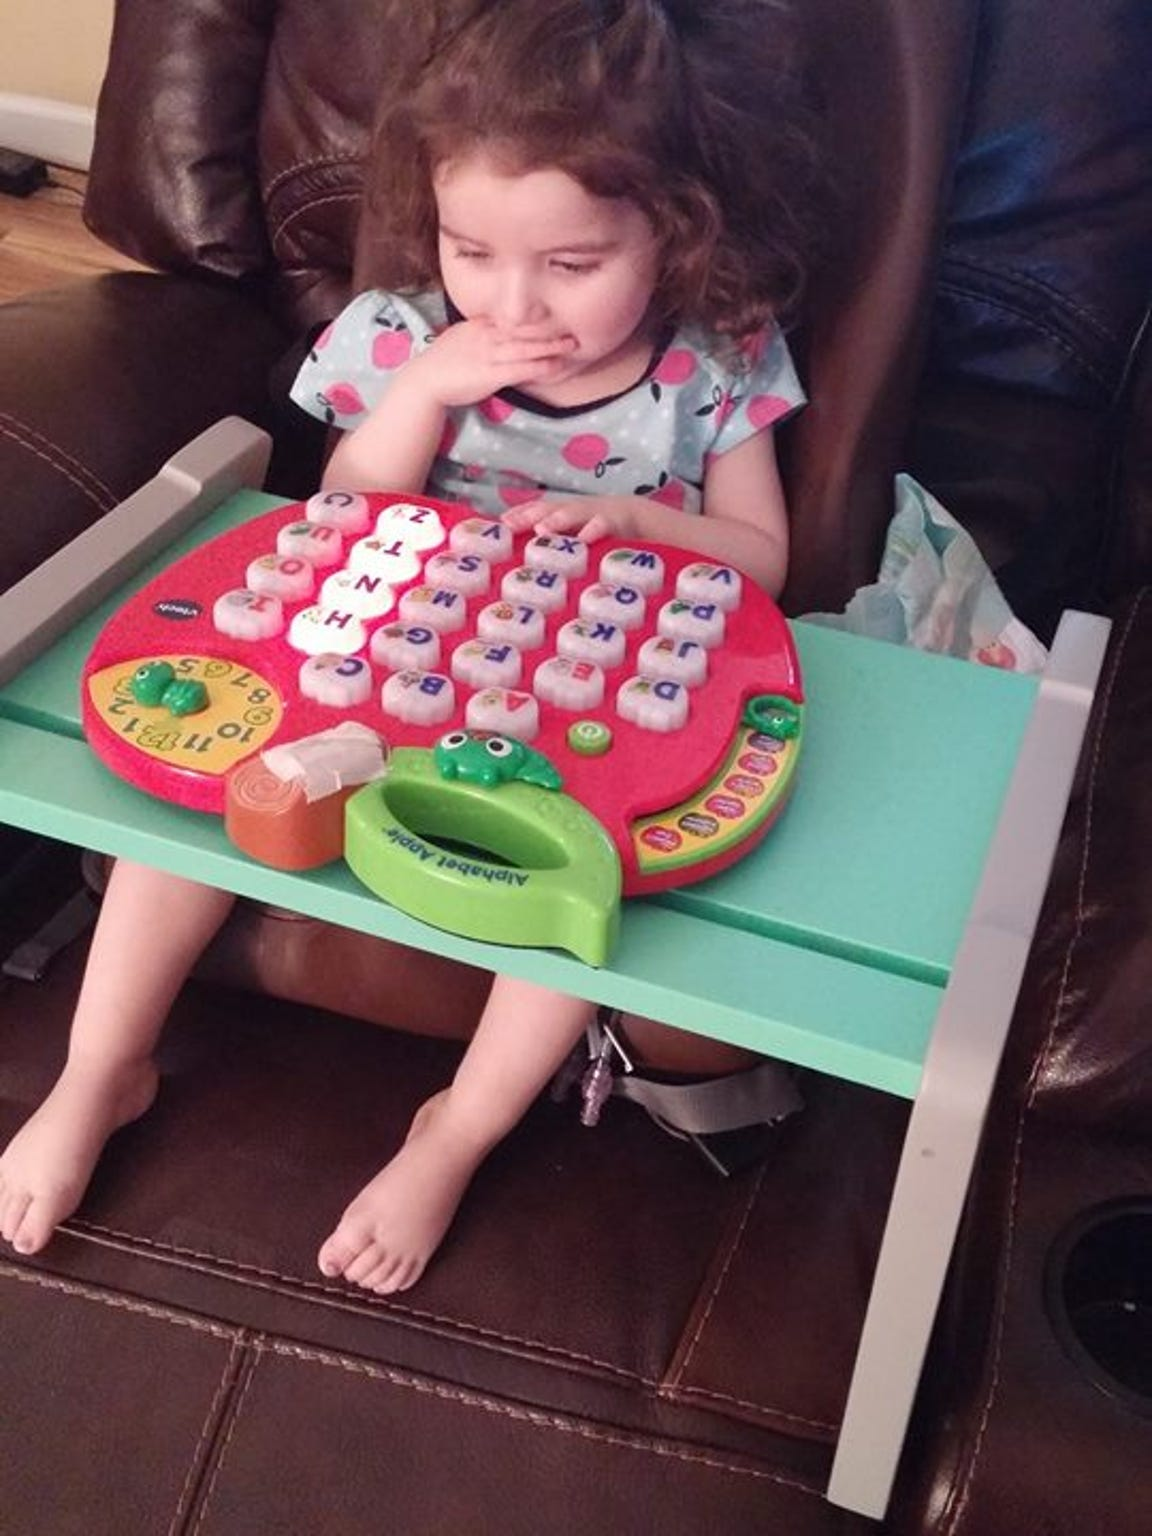 Ivy is slowly losing her ability to play with single-button